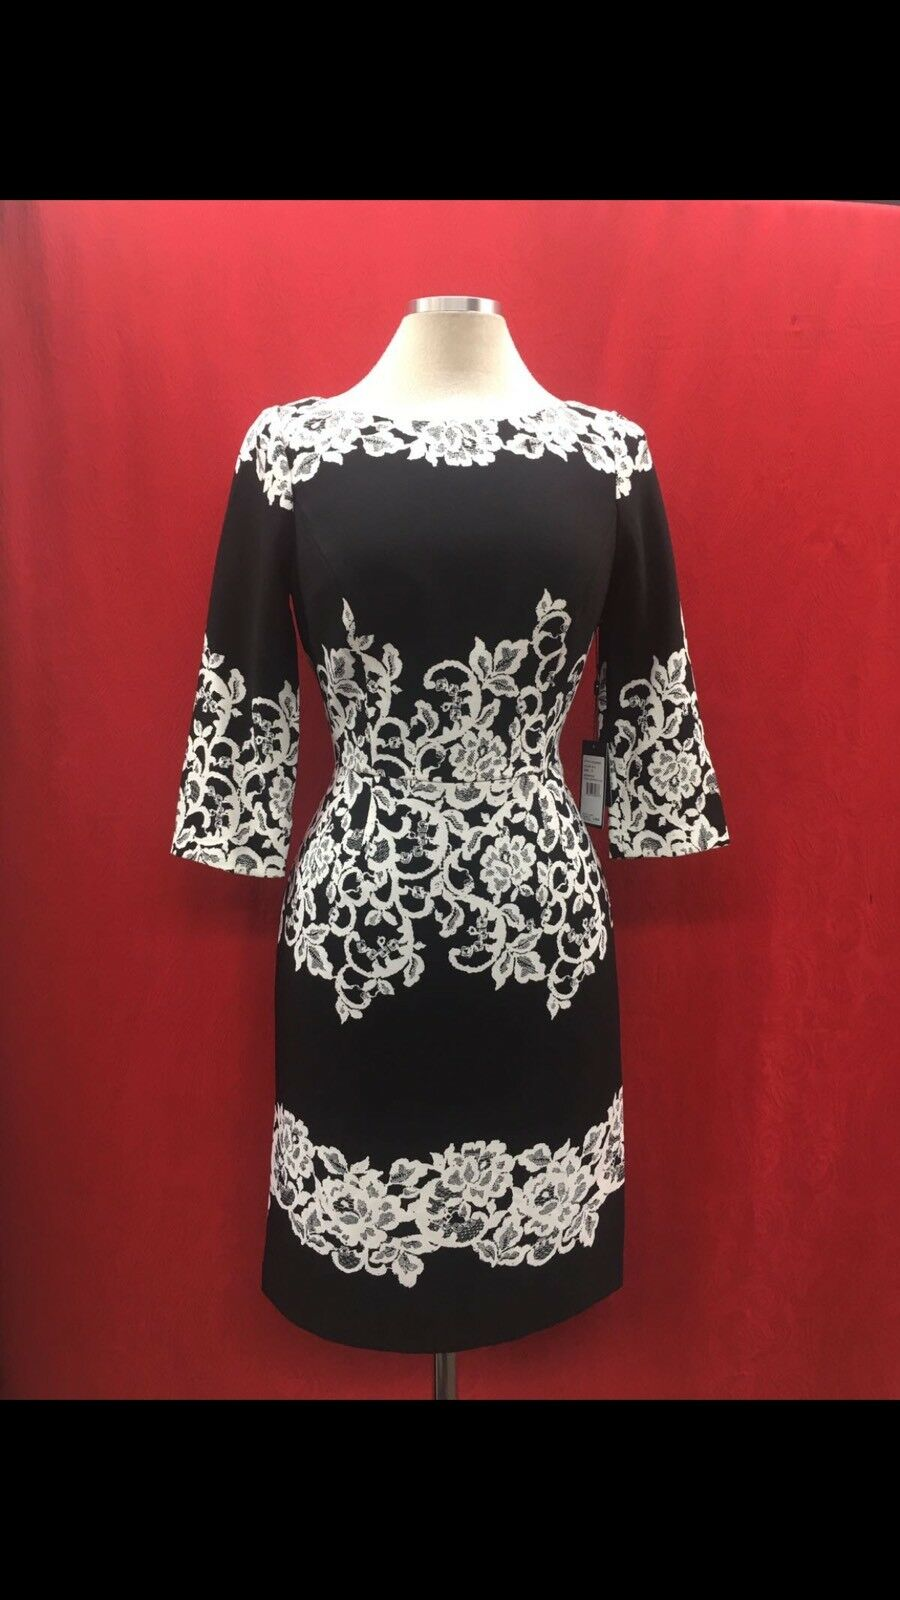 ADRIANNA PAPELL DRESS NEW WITH TAG SIZE 12 RETAIL LINED LENGTH 41